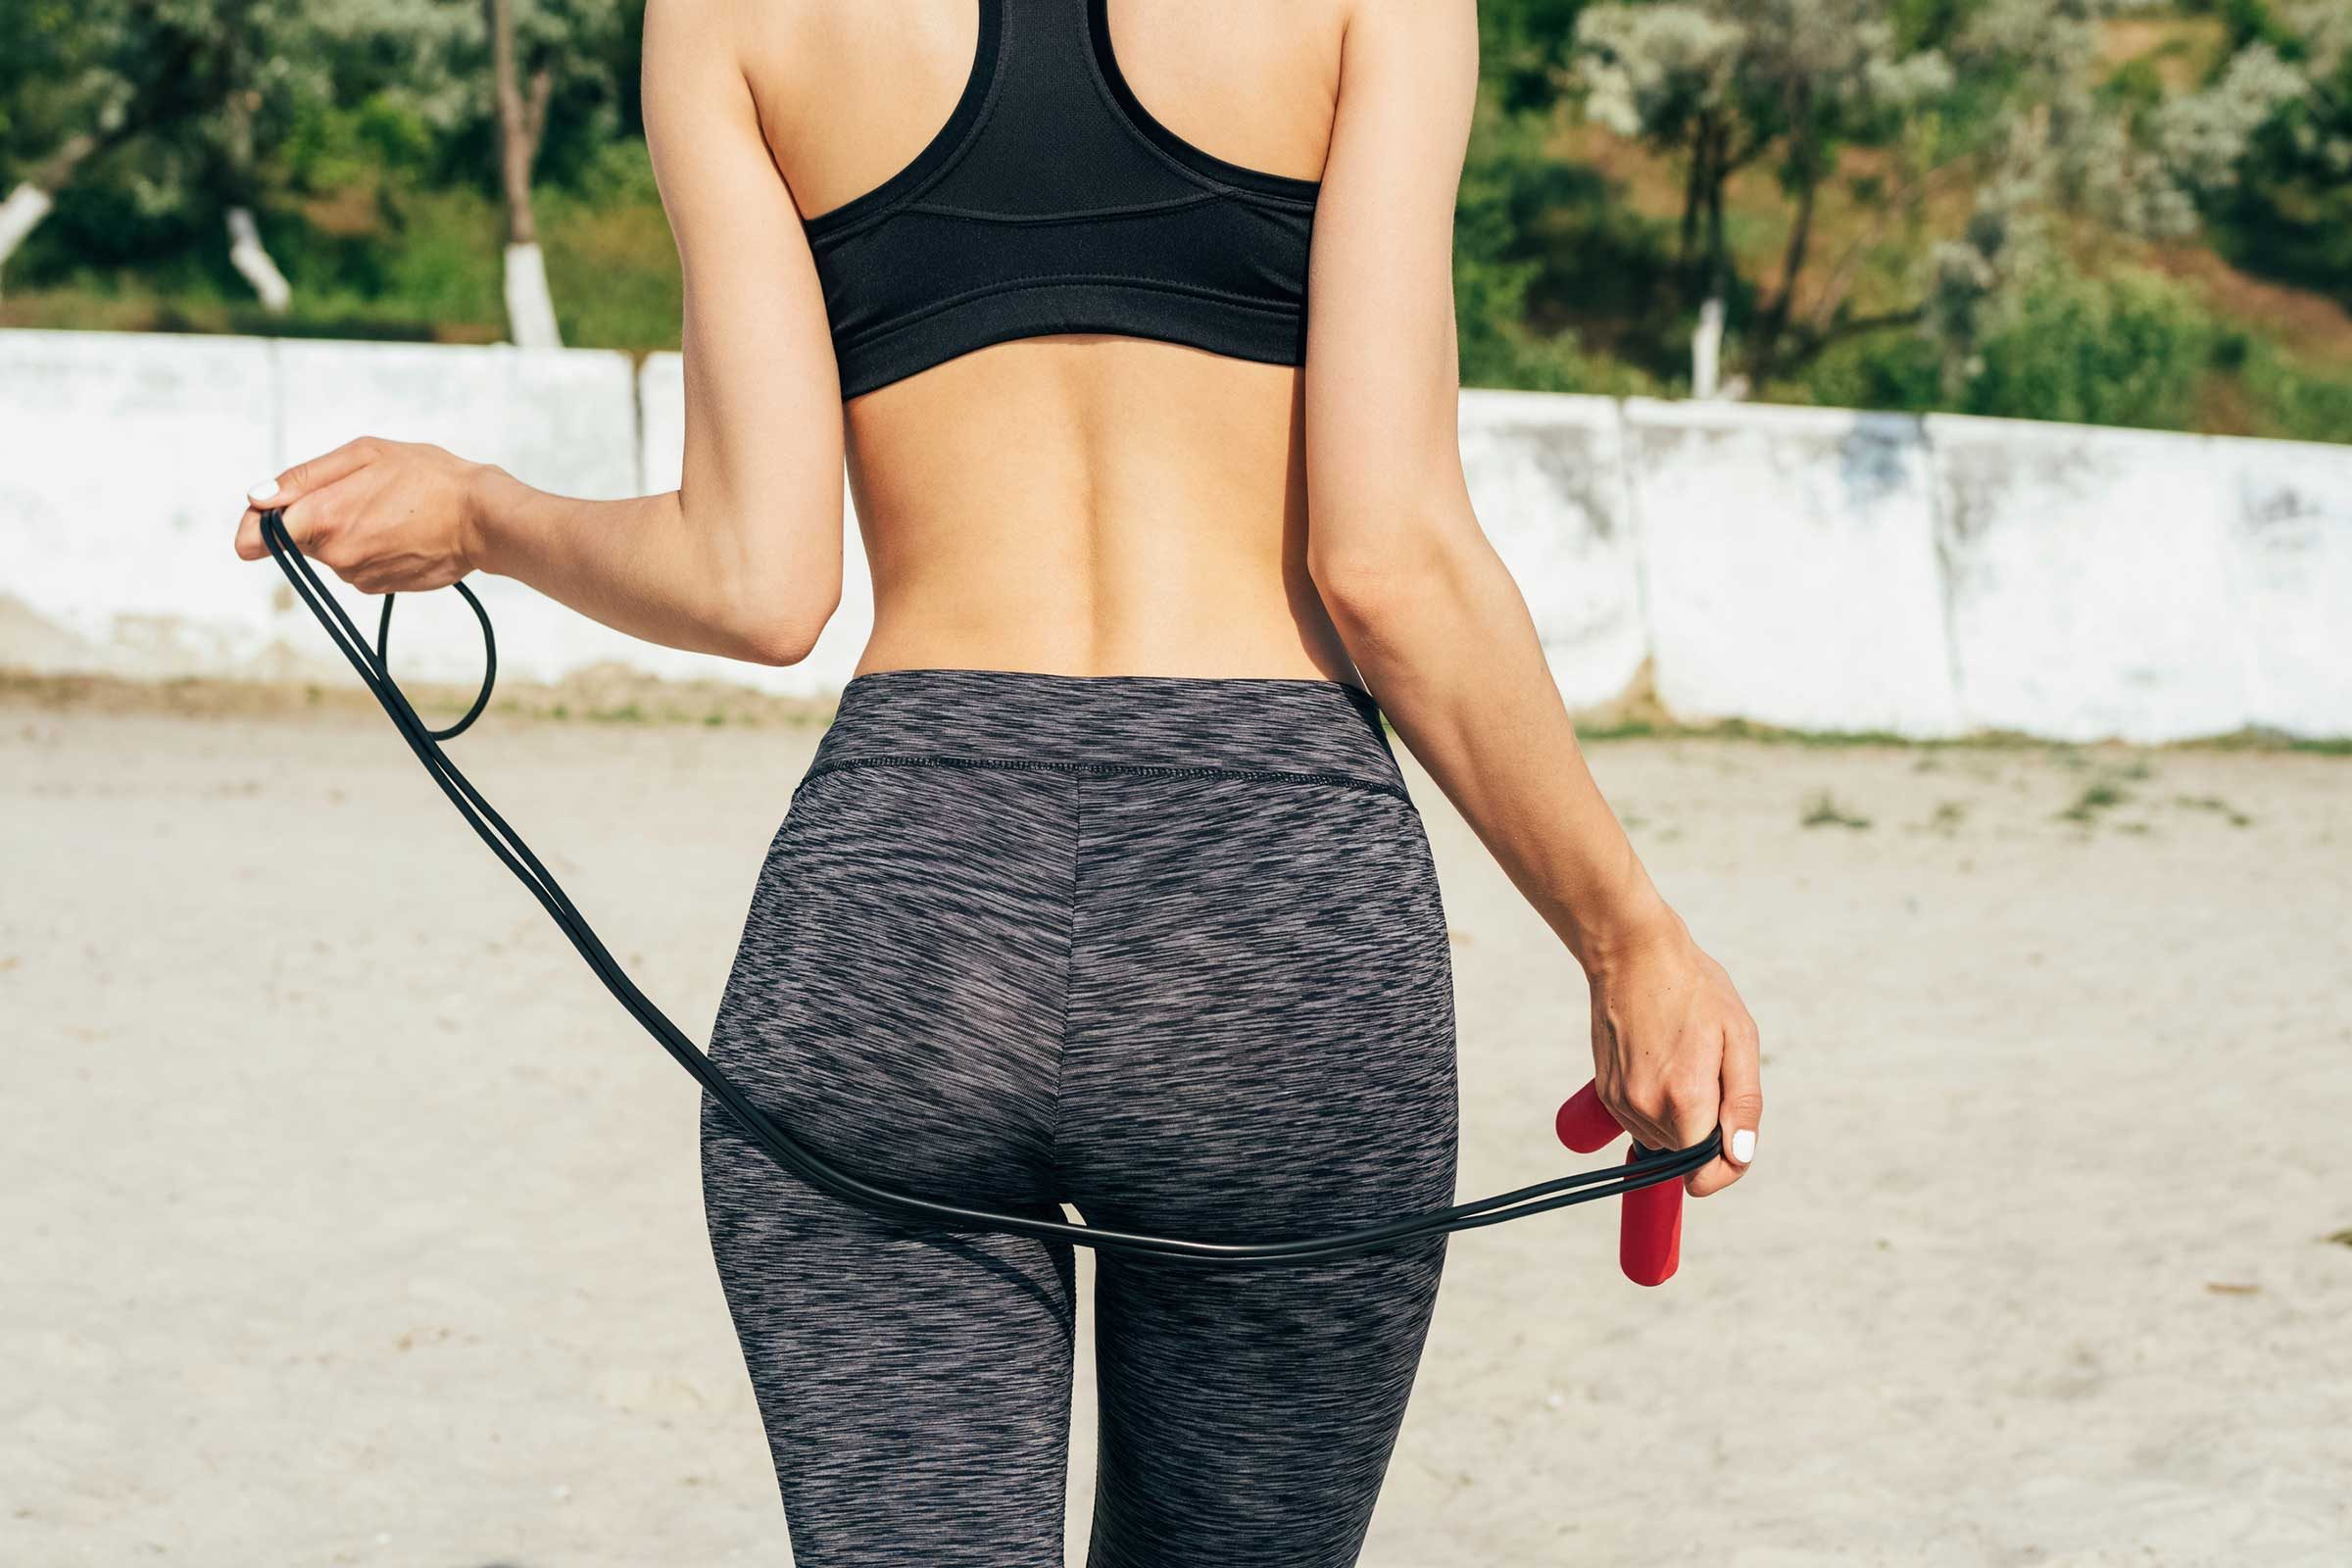 butt secrets: what you bum wants you to know | reader's digest